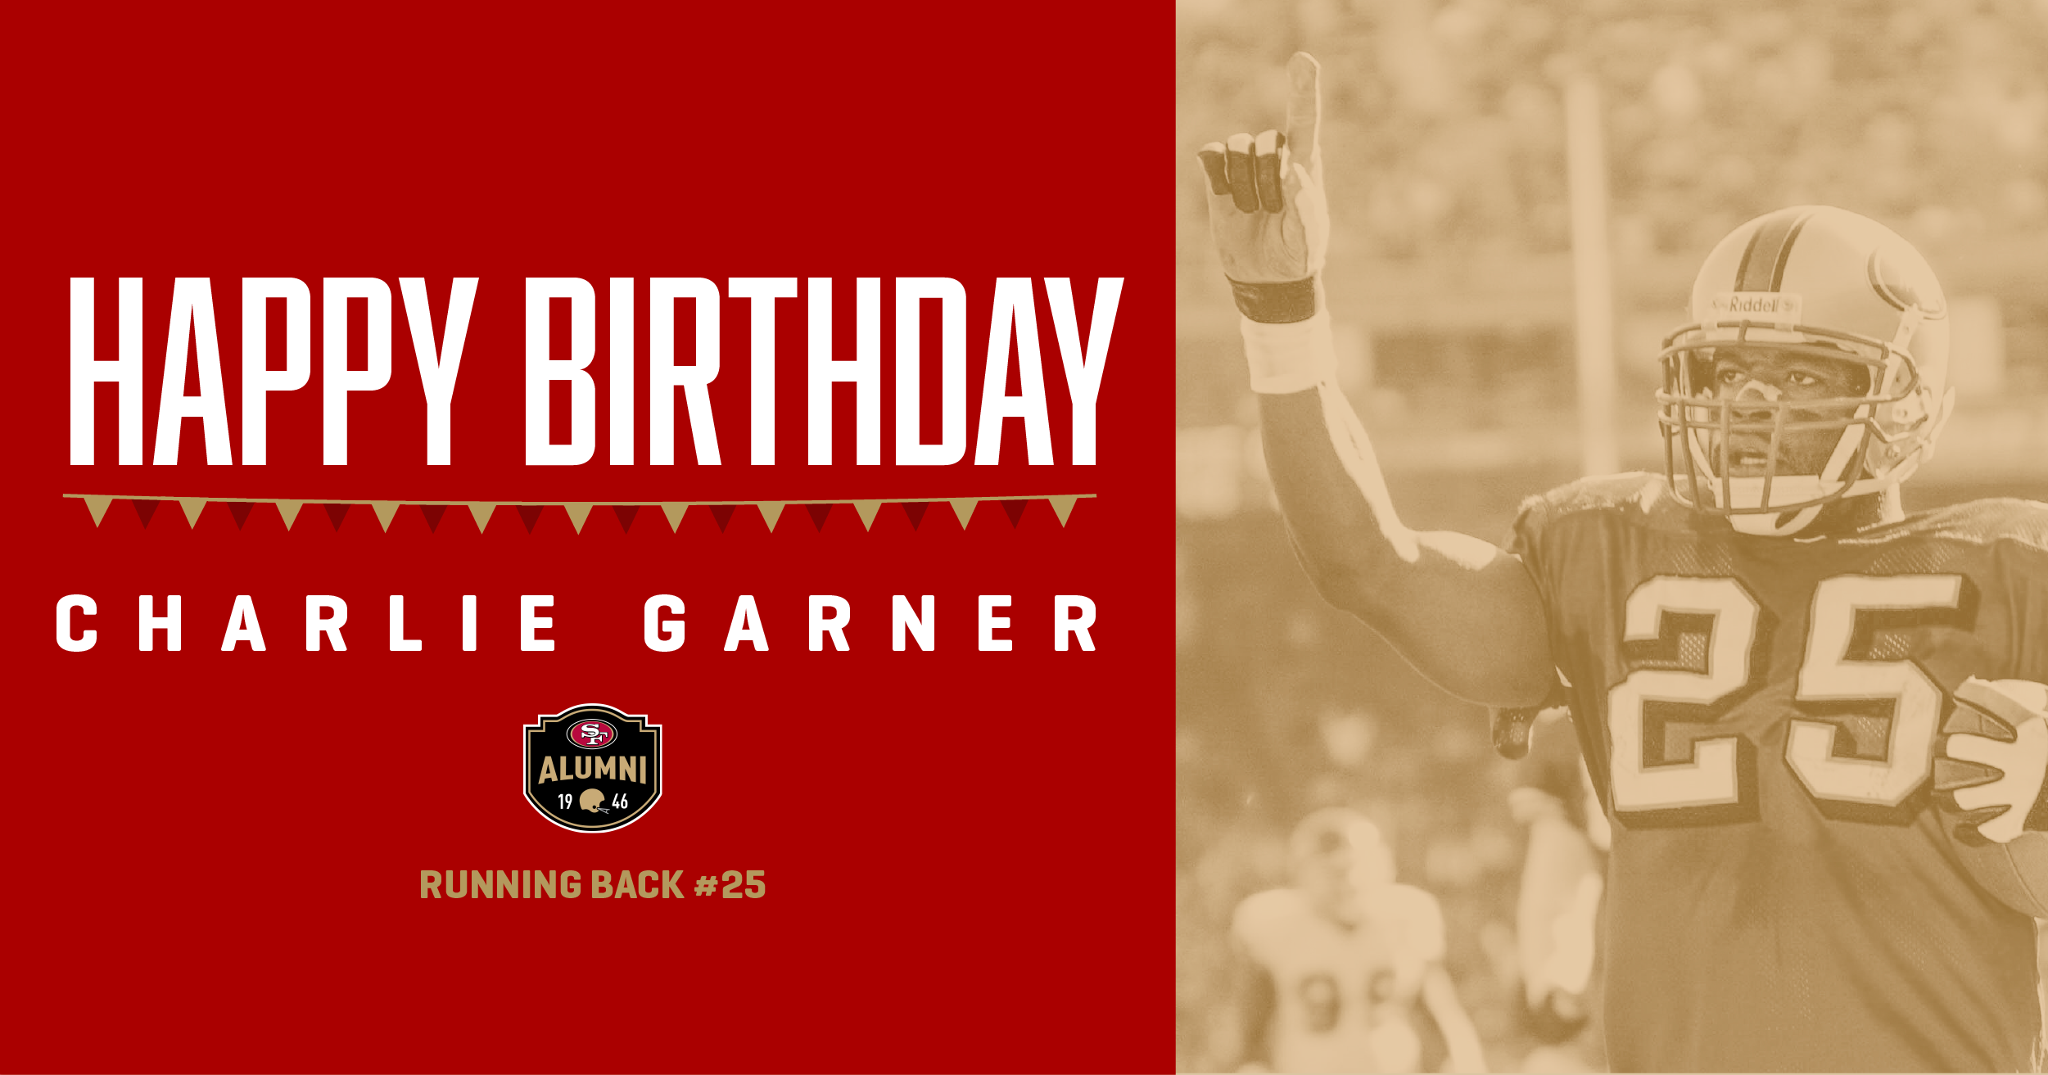 Join us in wishing Charlie Garner a happy birthday!   The former #49ers RB was a Pro Bowler in red & gold in 2000. https://t.co/CCLZ2In9rn